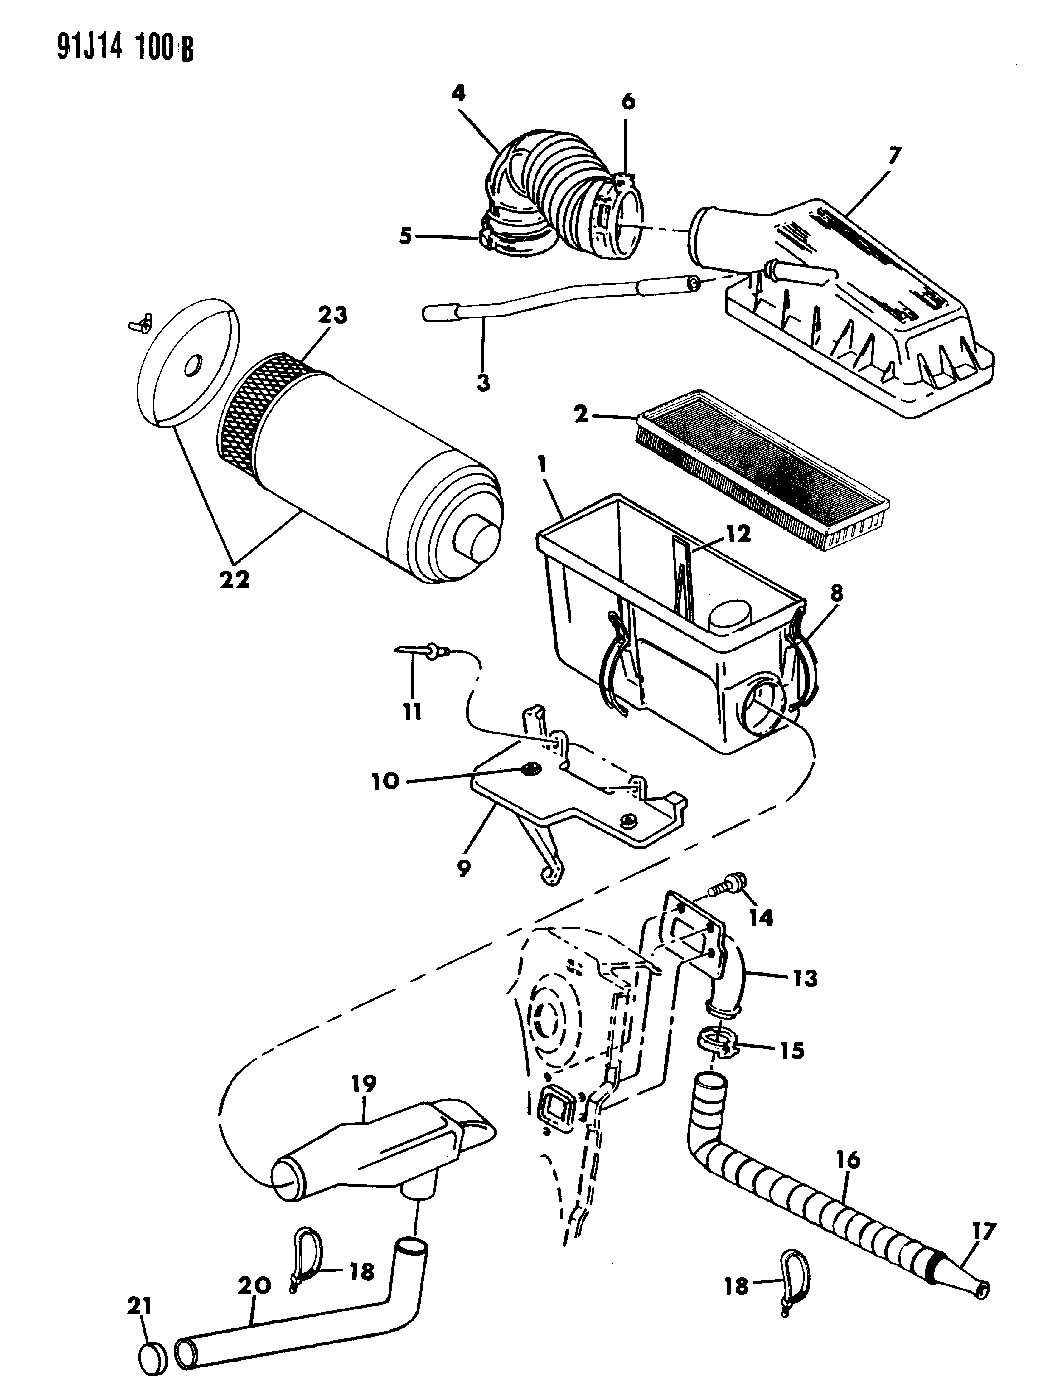 1993 Jeep Yj Wrangler Parts Diagrams • Wiring Diagram For Free